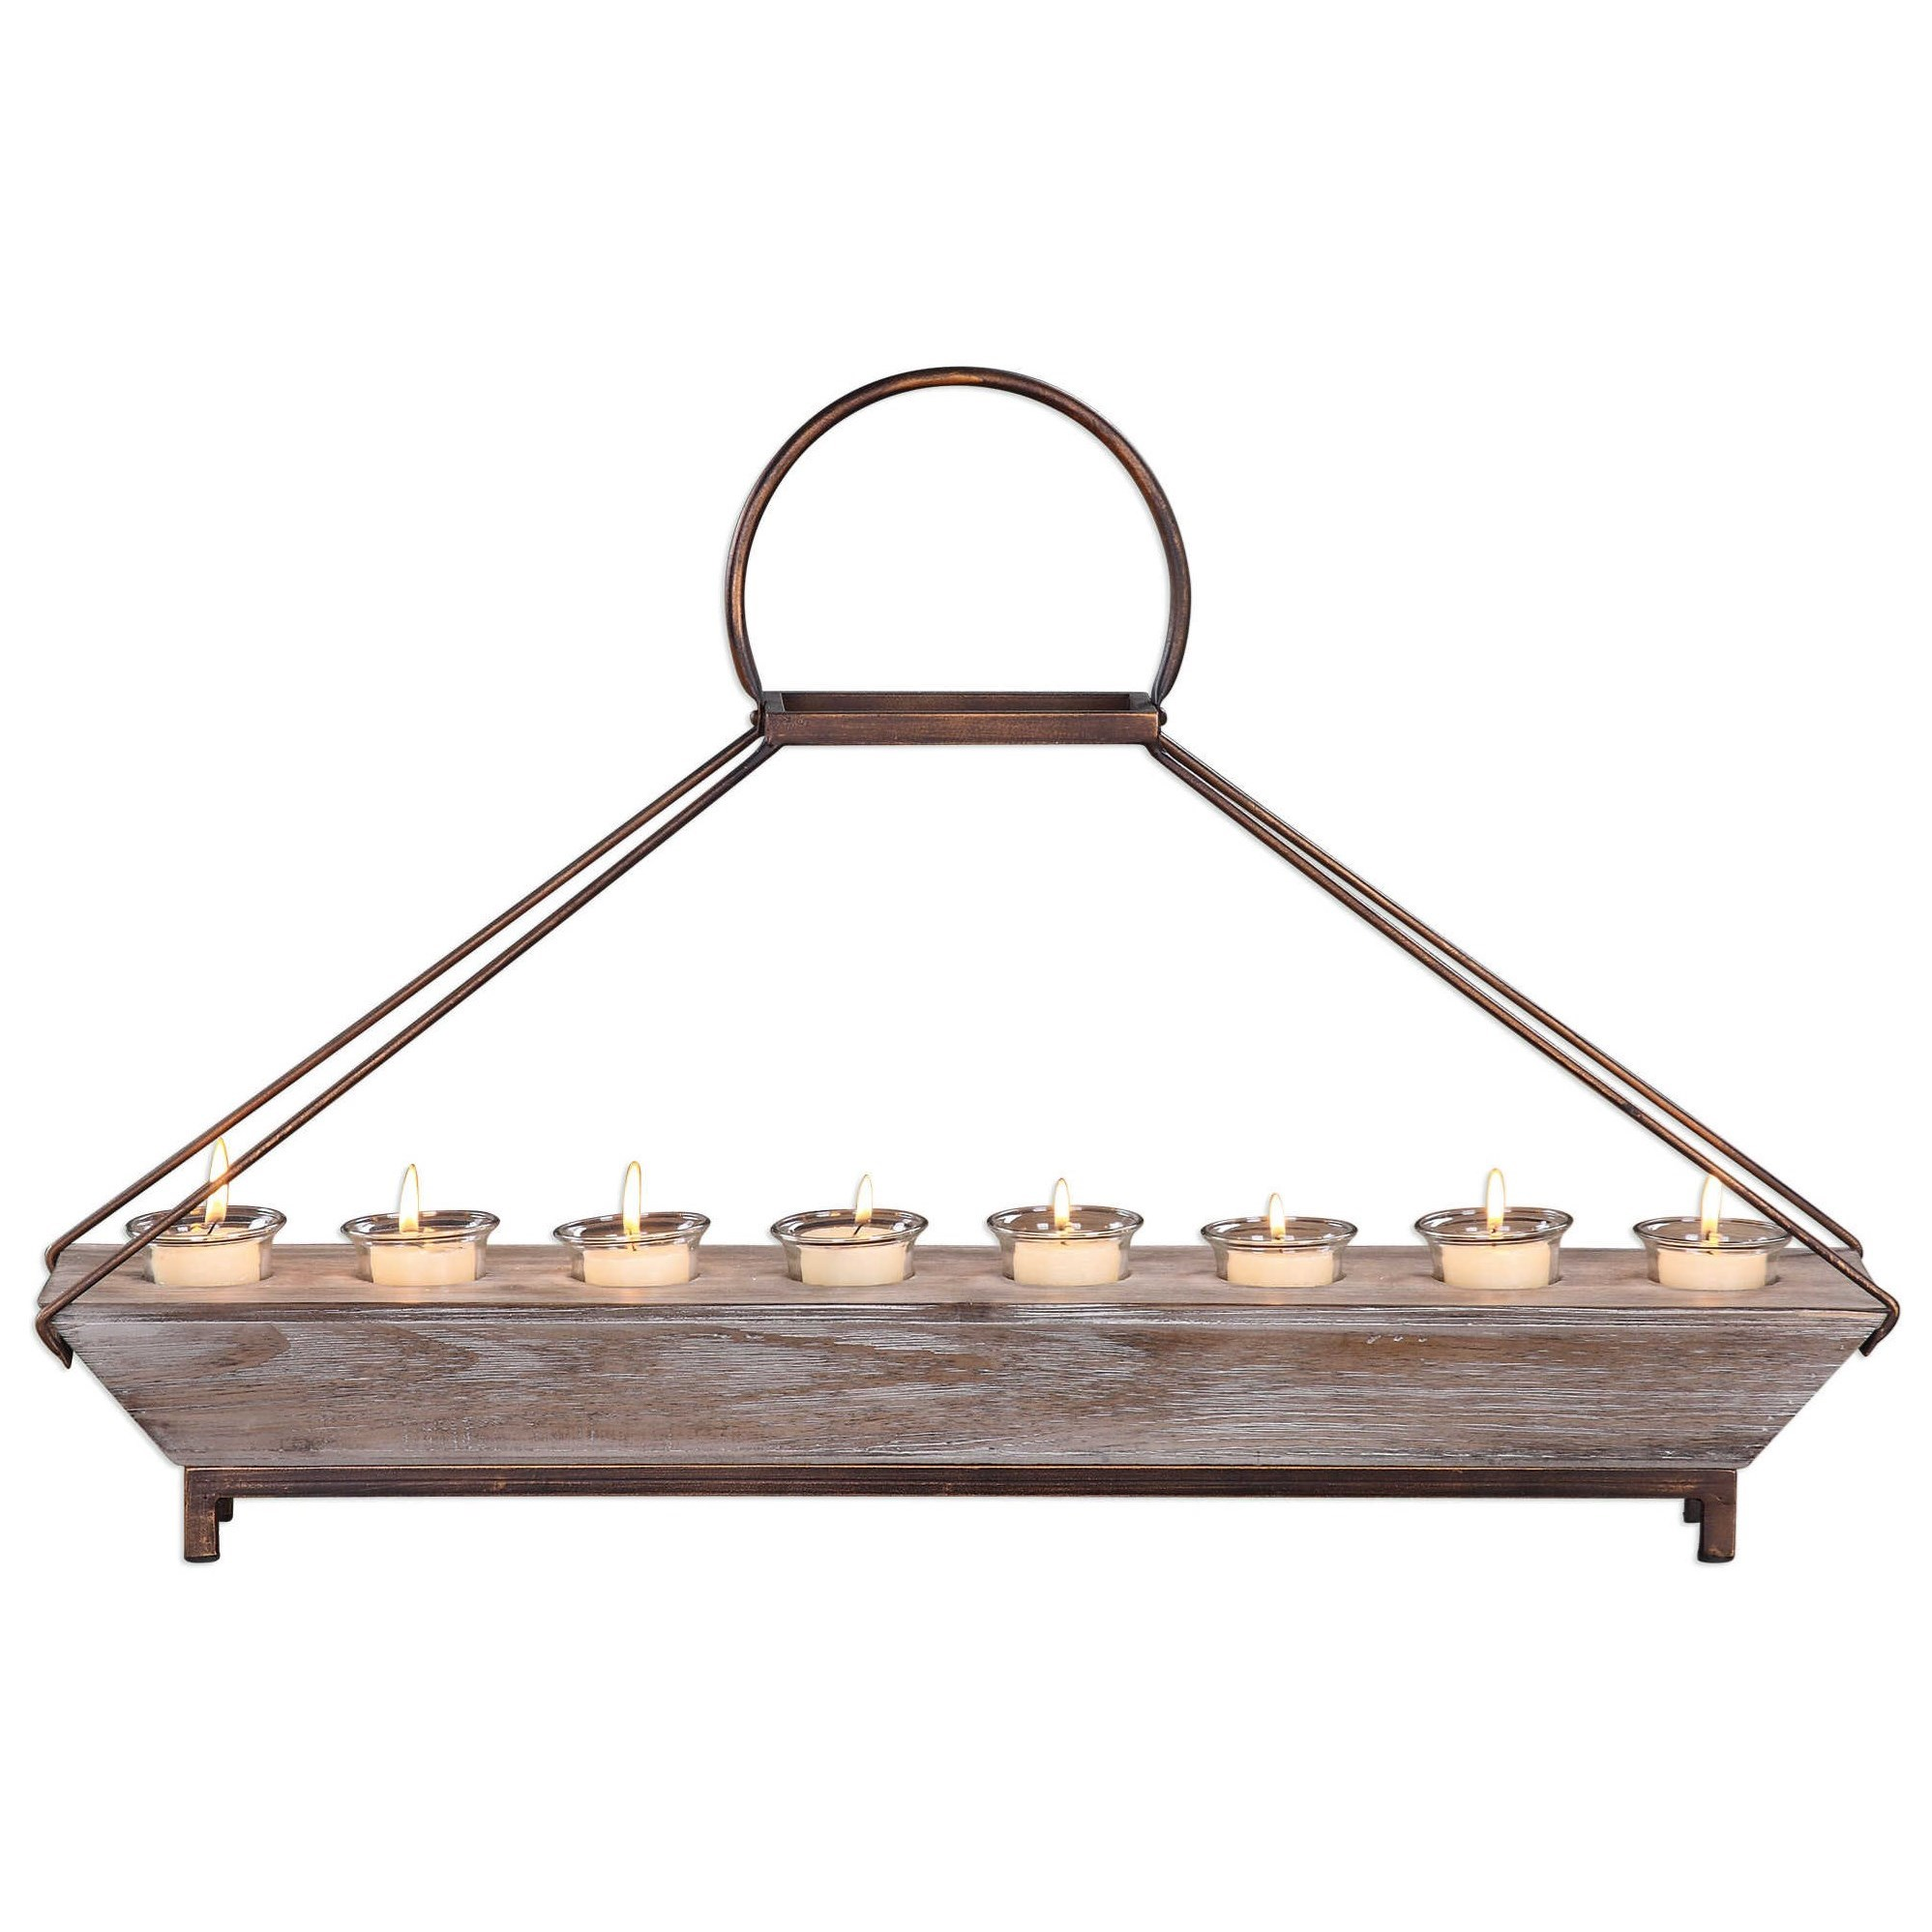 Accessories - Candle Holders Benigna Tea Light Candleholder by Uttermost at Reid's Furniture